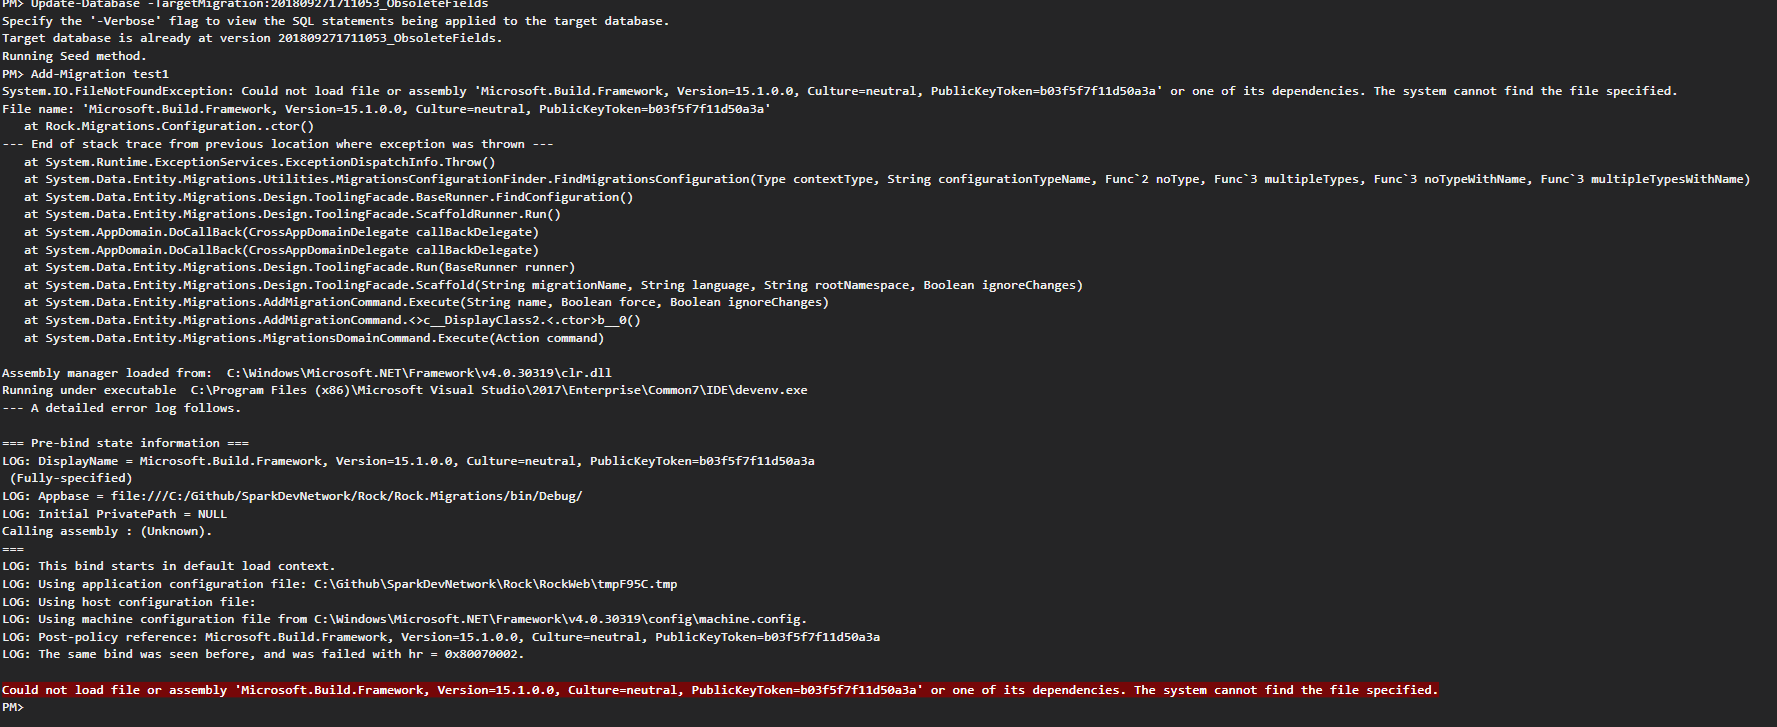 Add-Migration and Update-Database fail because of attempt to